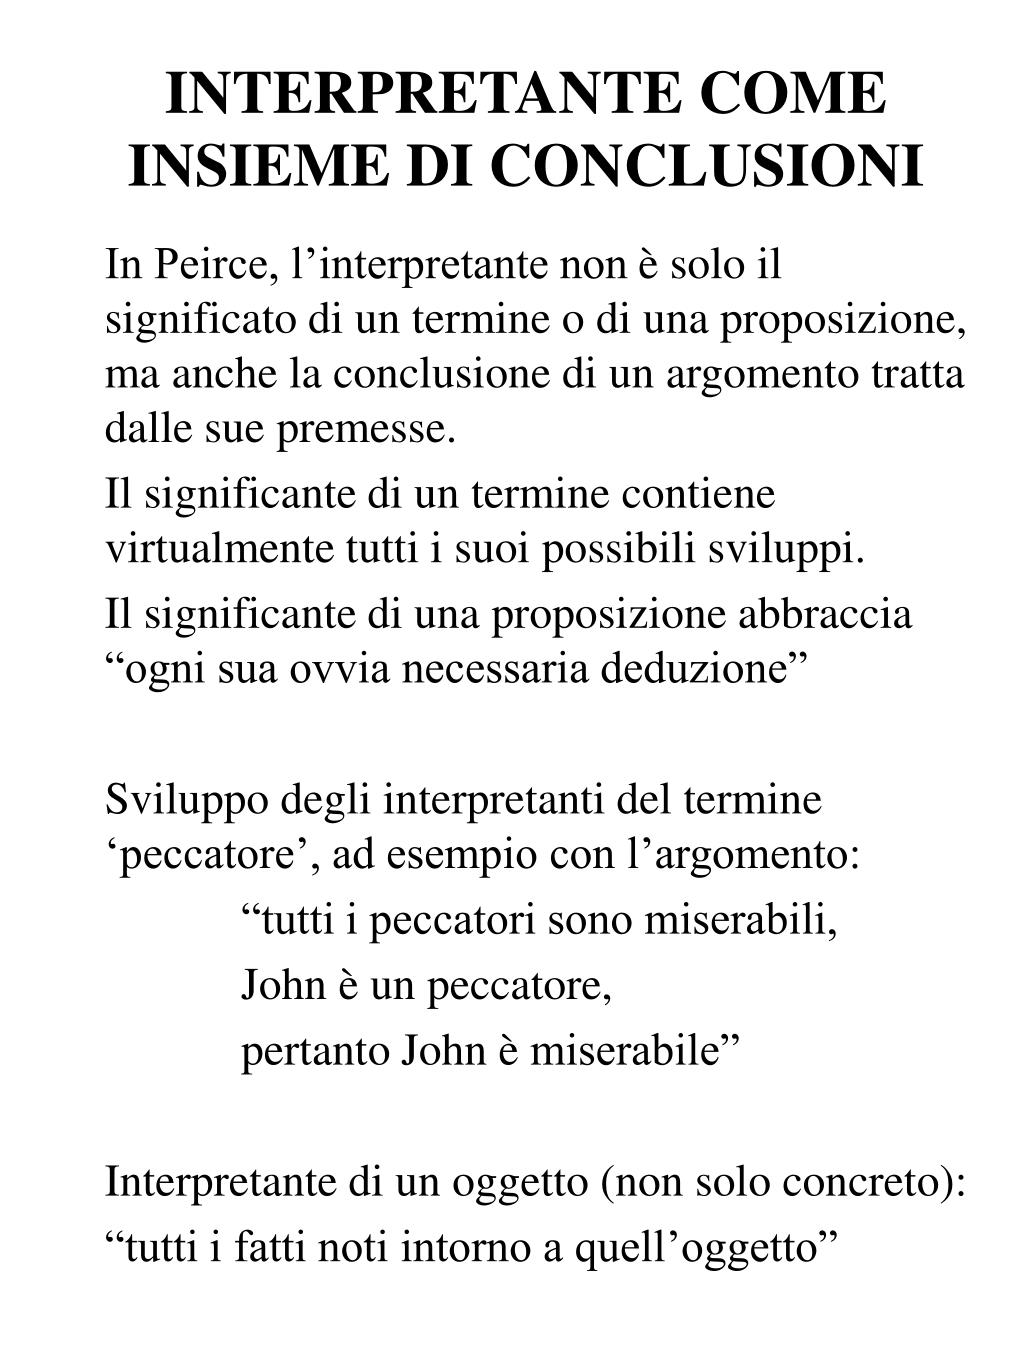 INTERPRETANTE COME INSIEME DI CONCLUSIONI